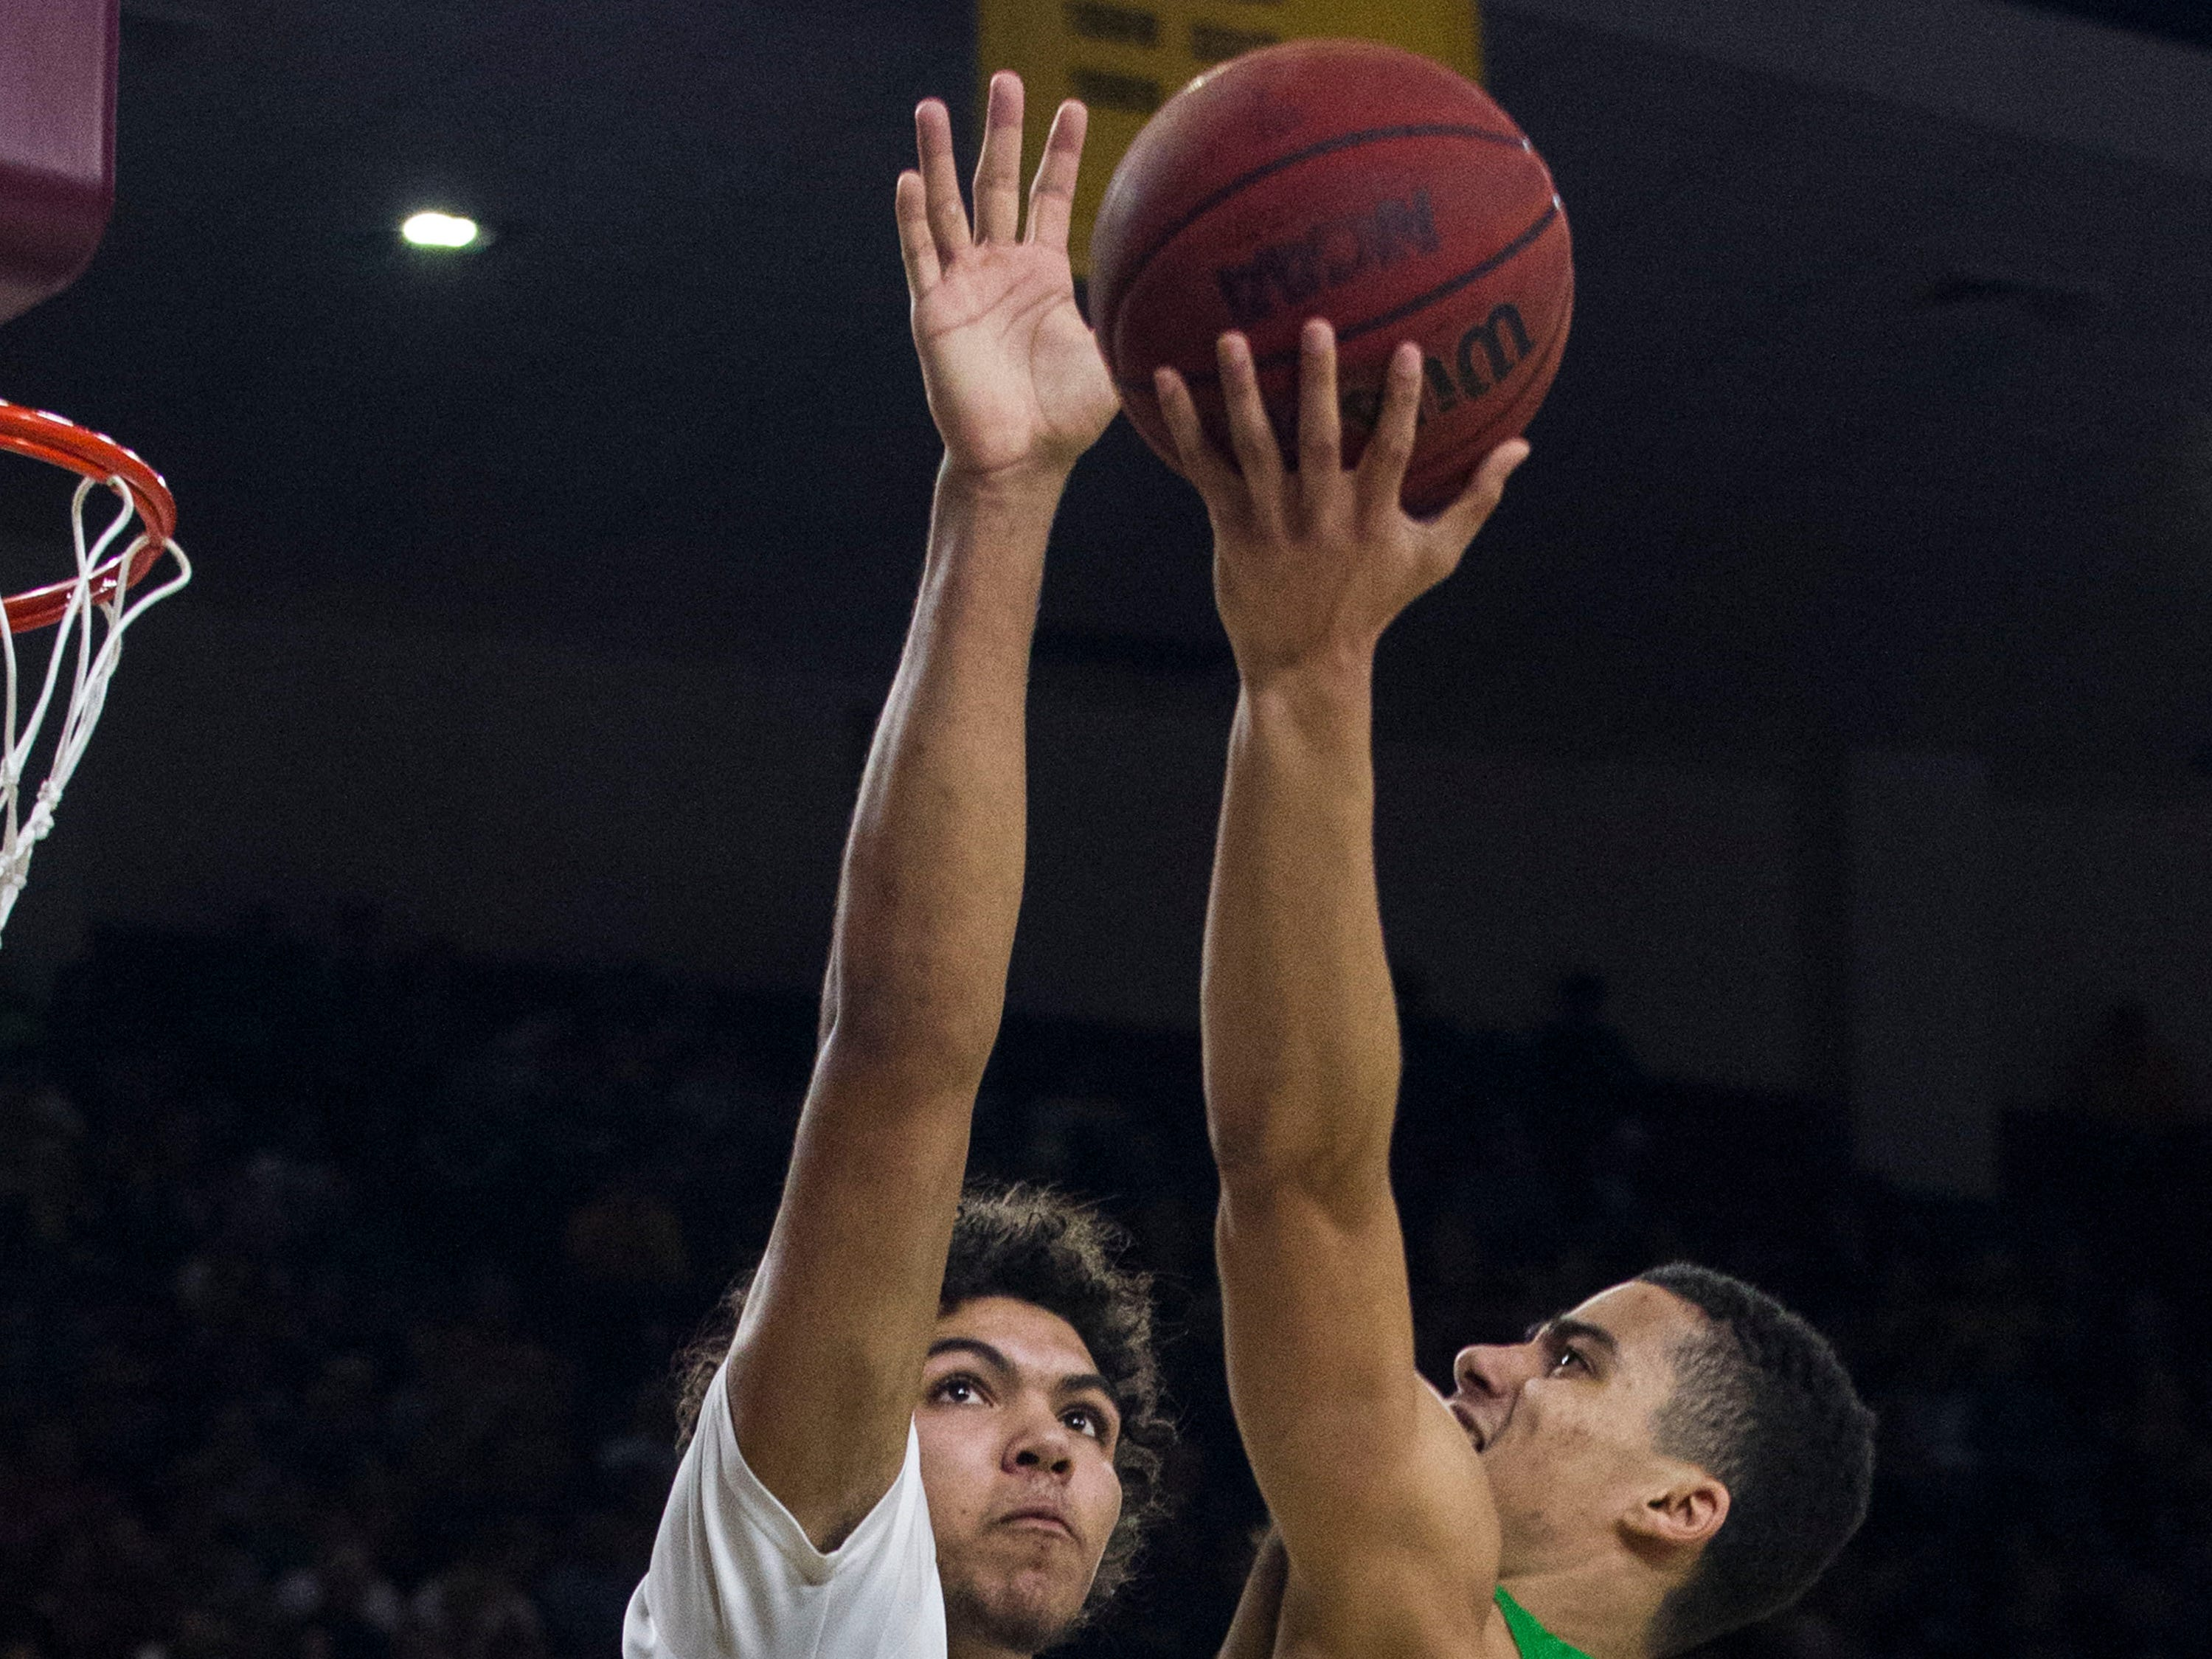 Arizona State's Taeshon Cherry (35) goes in for a block against Oregon's Will Richardson (0) during the first half, Saturday, Jan. 19, 2019, in Tempe, Ariz. (AP Photo/Darryl Webb)